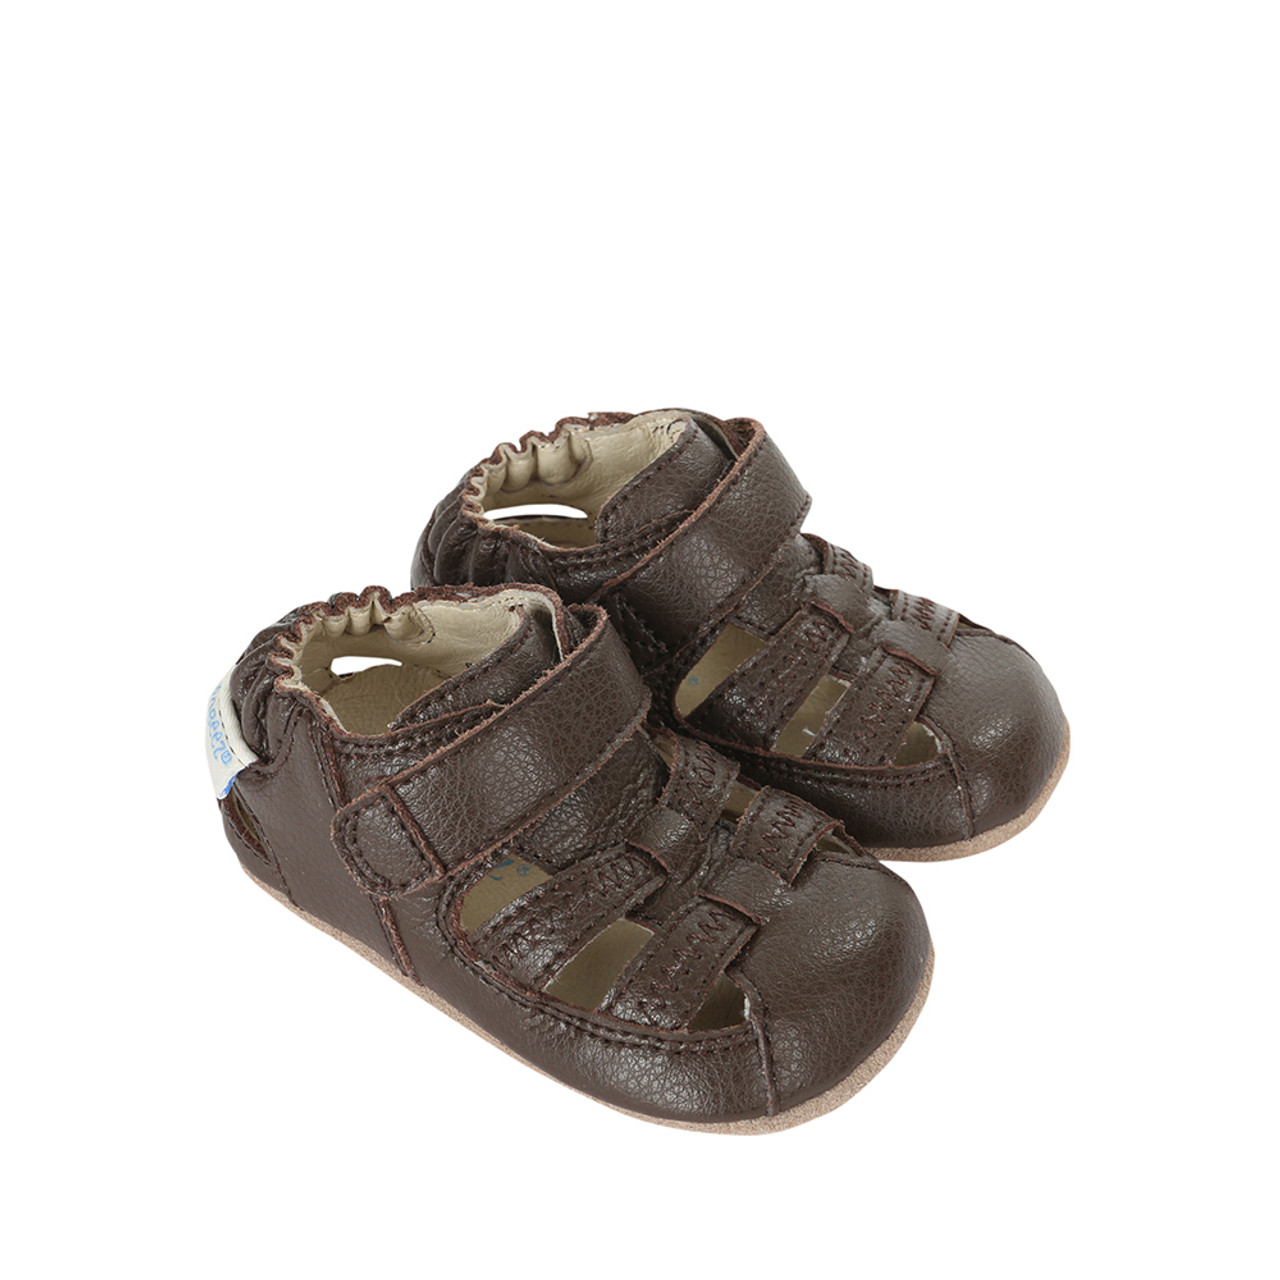 6fc045a52cfa4 Side view of Brown Baby Sandal